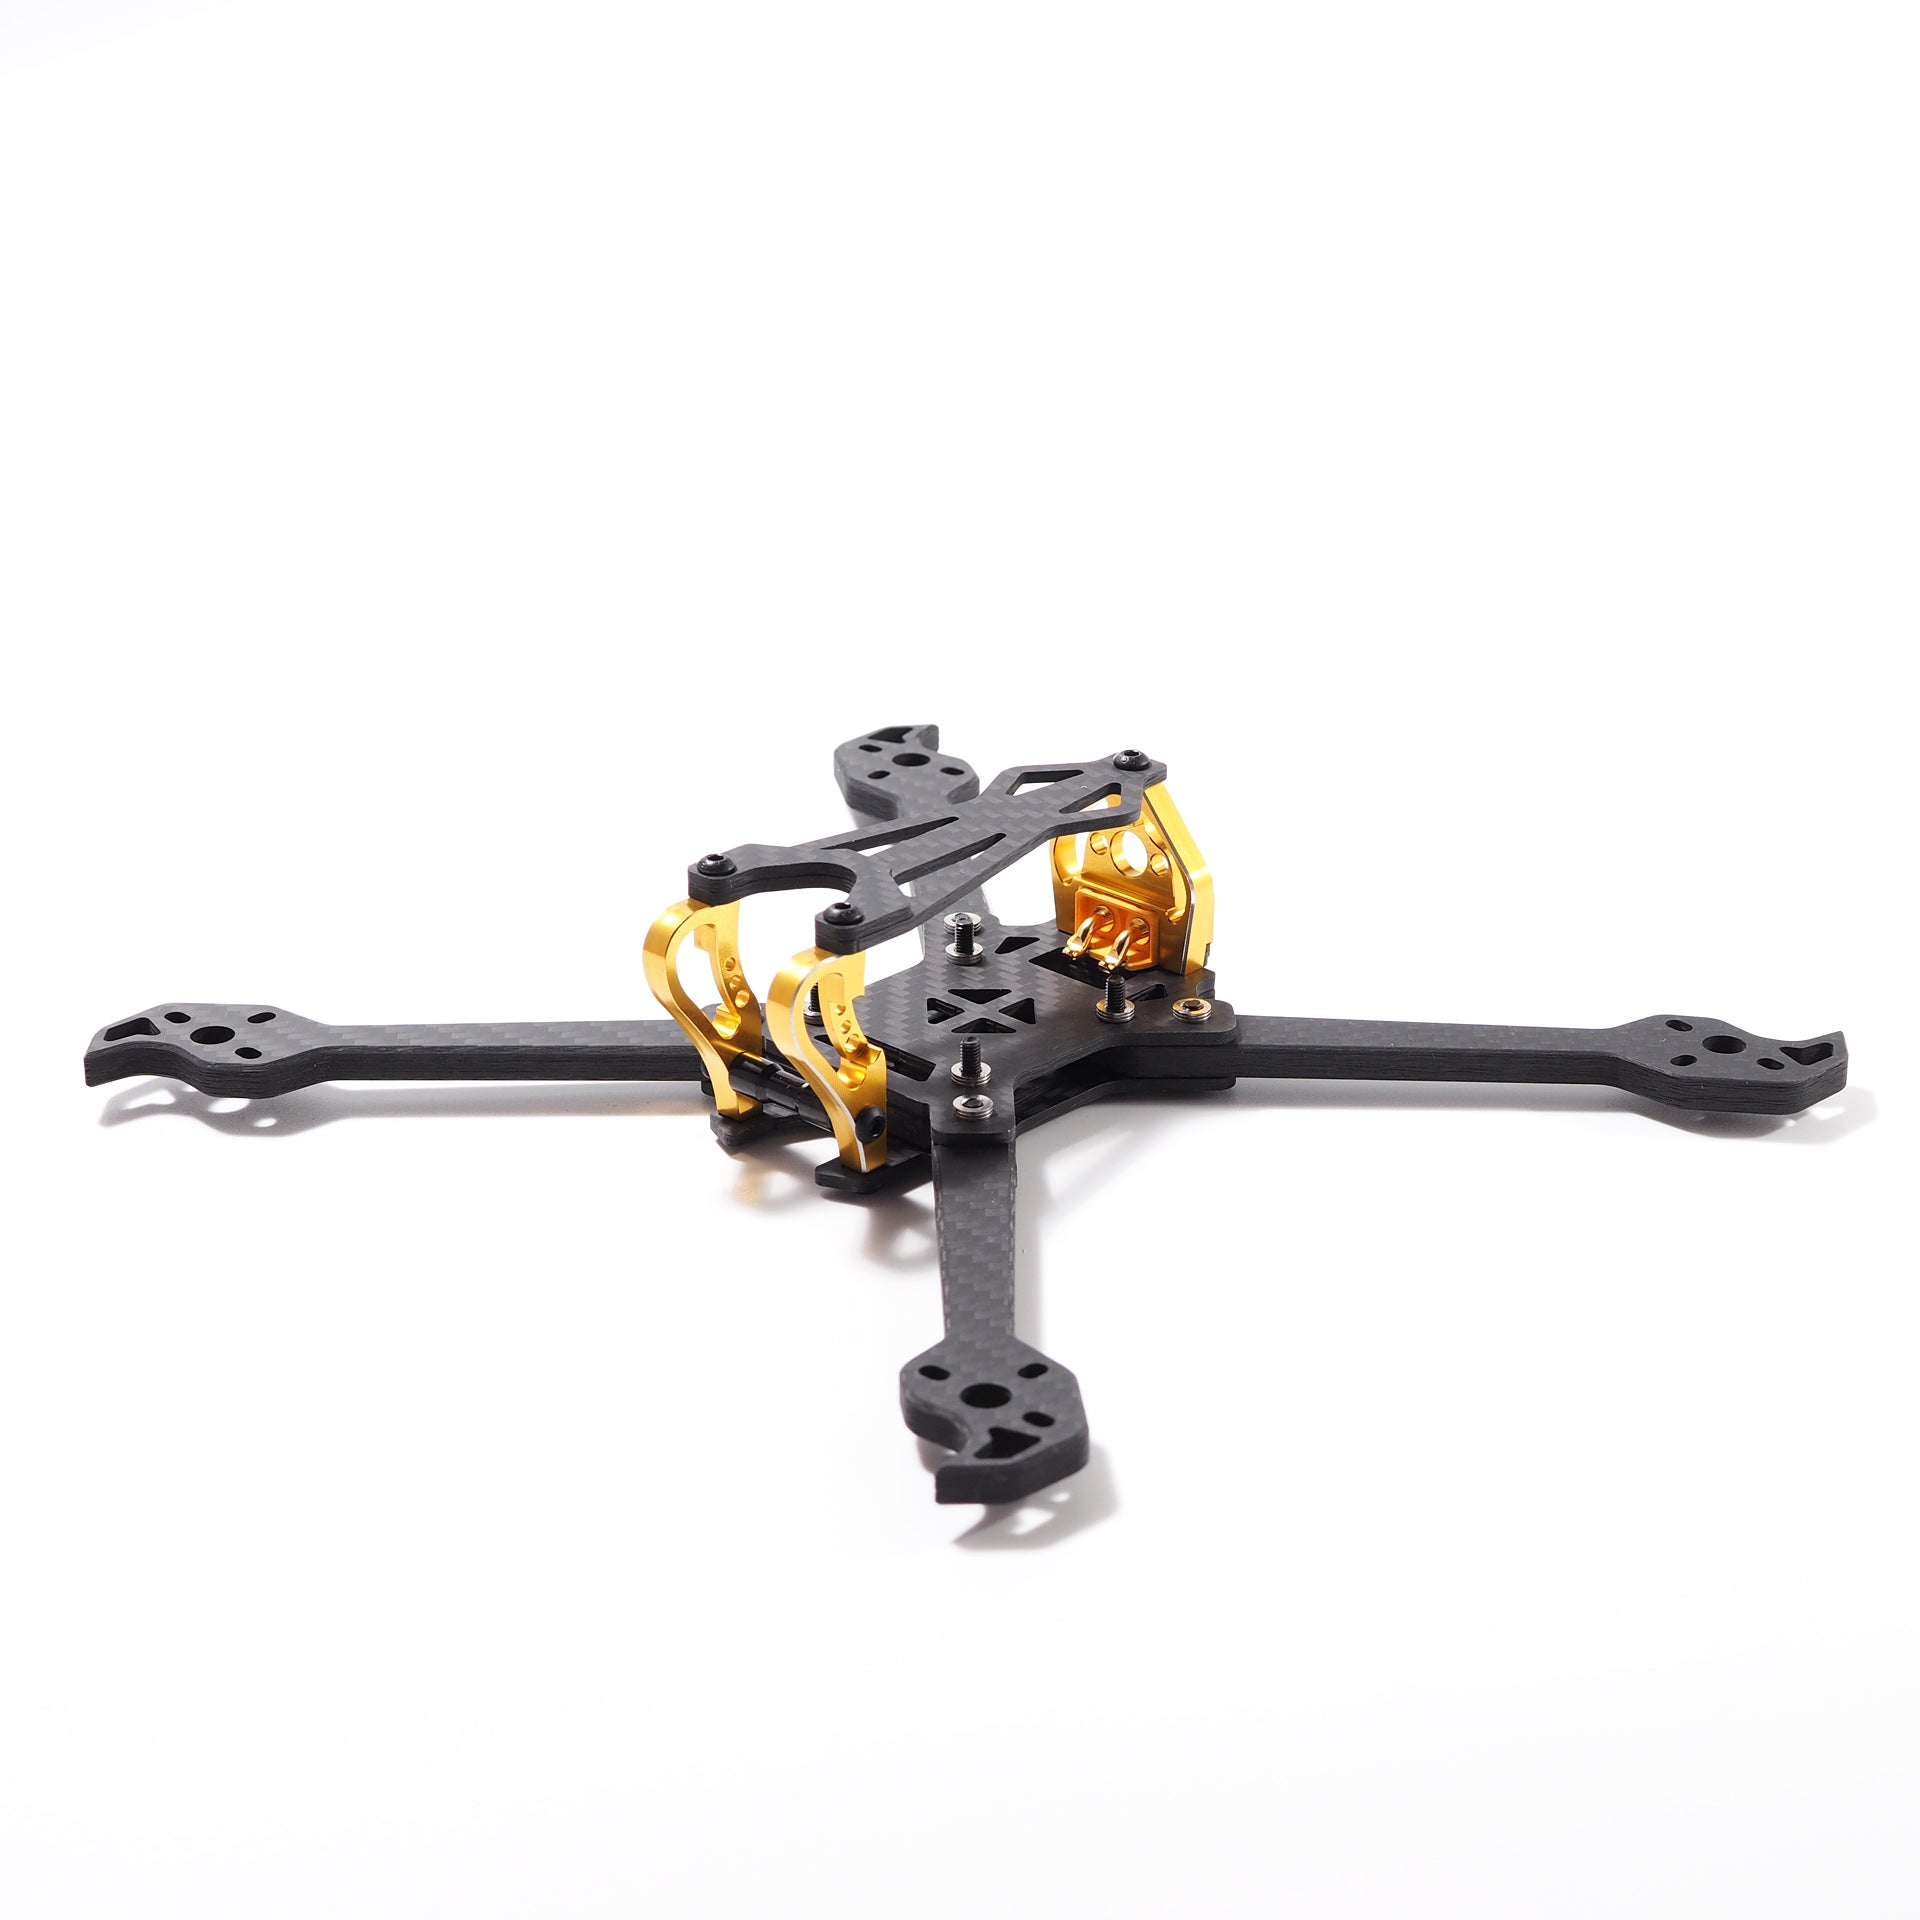 FLYWOO MACAW 220mm 5 Inch FPV Racing Frame Kit 5mm Arm Supports RunCam Micro Swift Foxxer Arrow